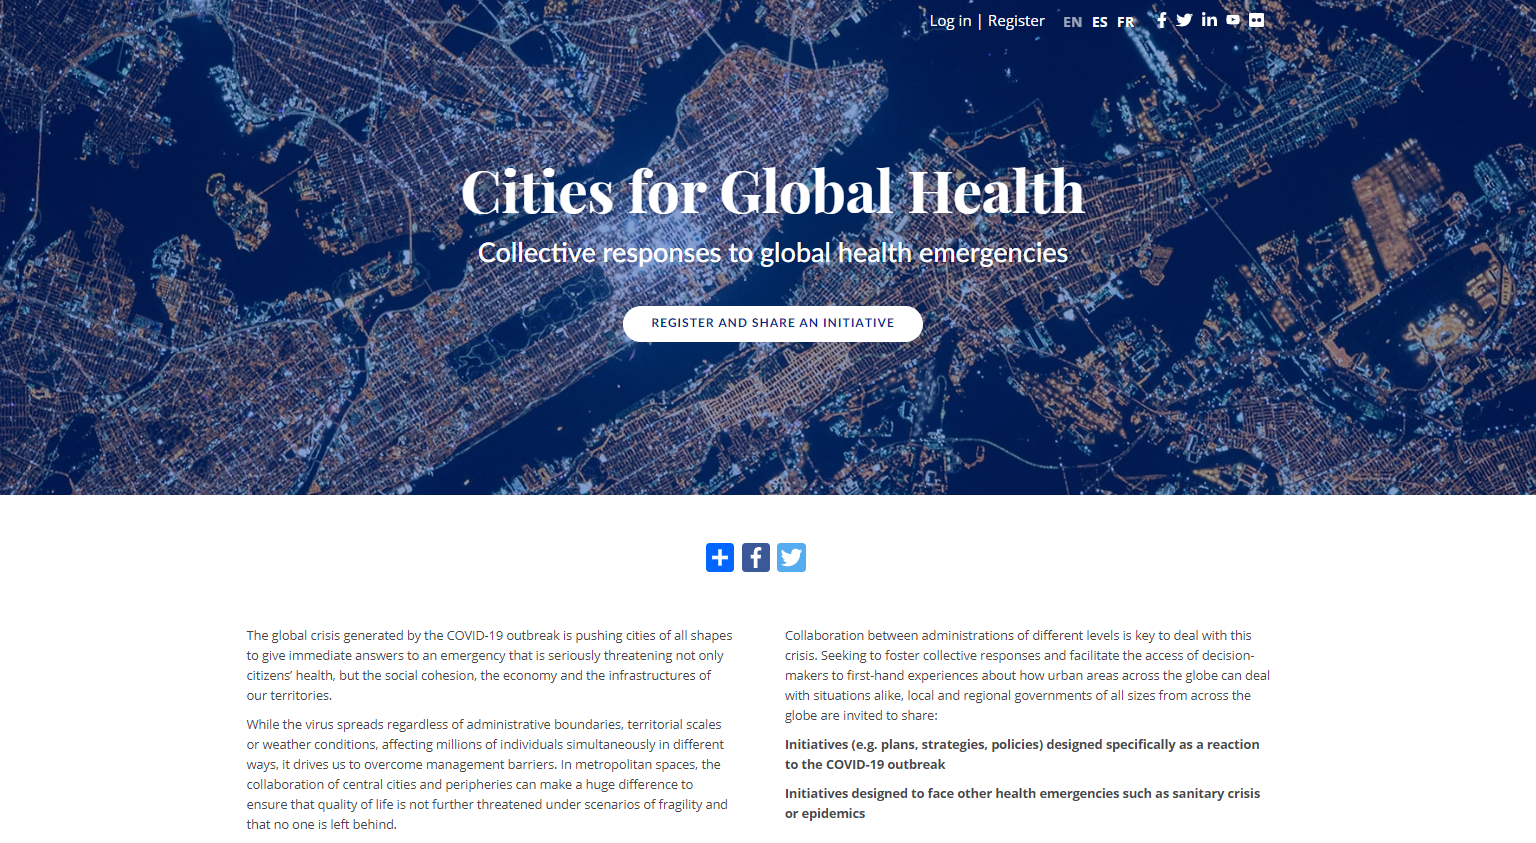 Cities for Global Health